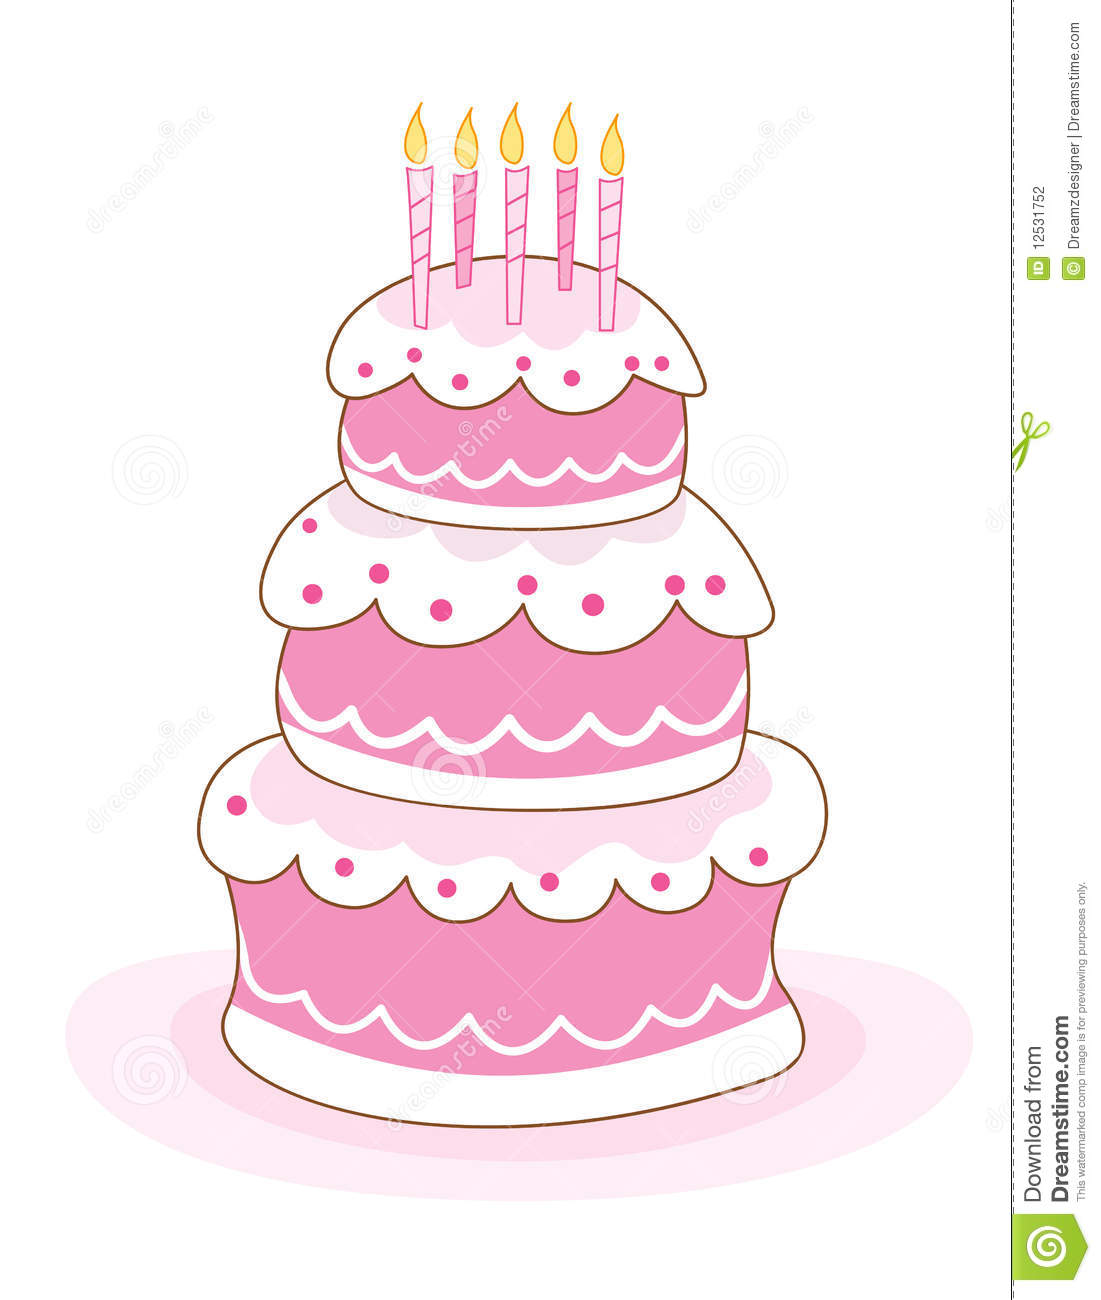 birthday cake candles clipart ; birthday-cake-candles-12531752